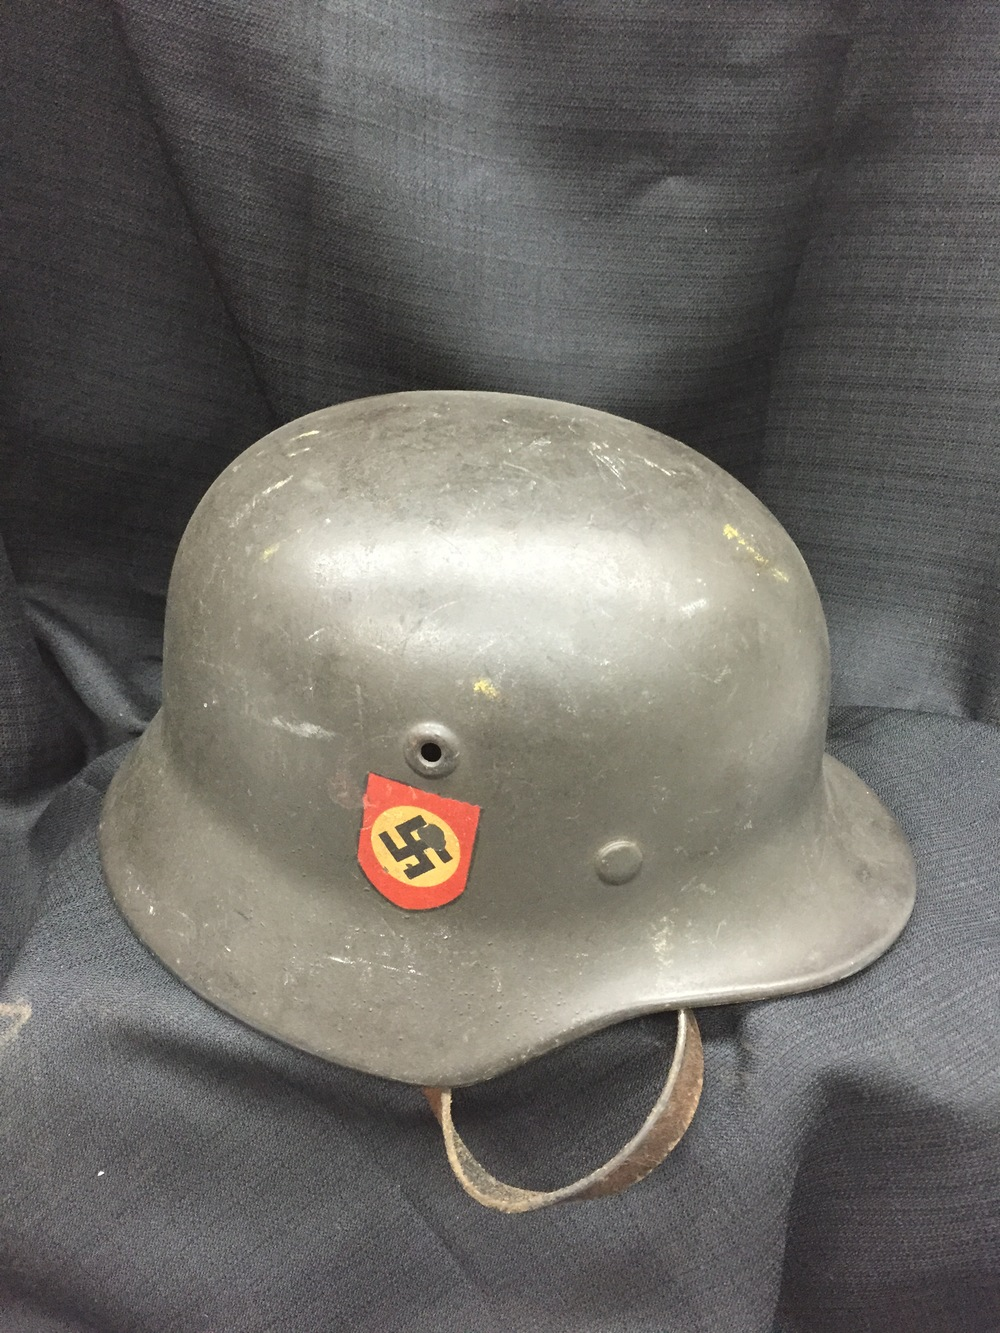 WWII German Helmet.JPG